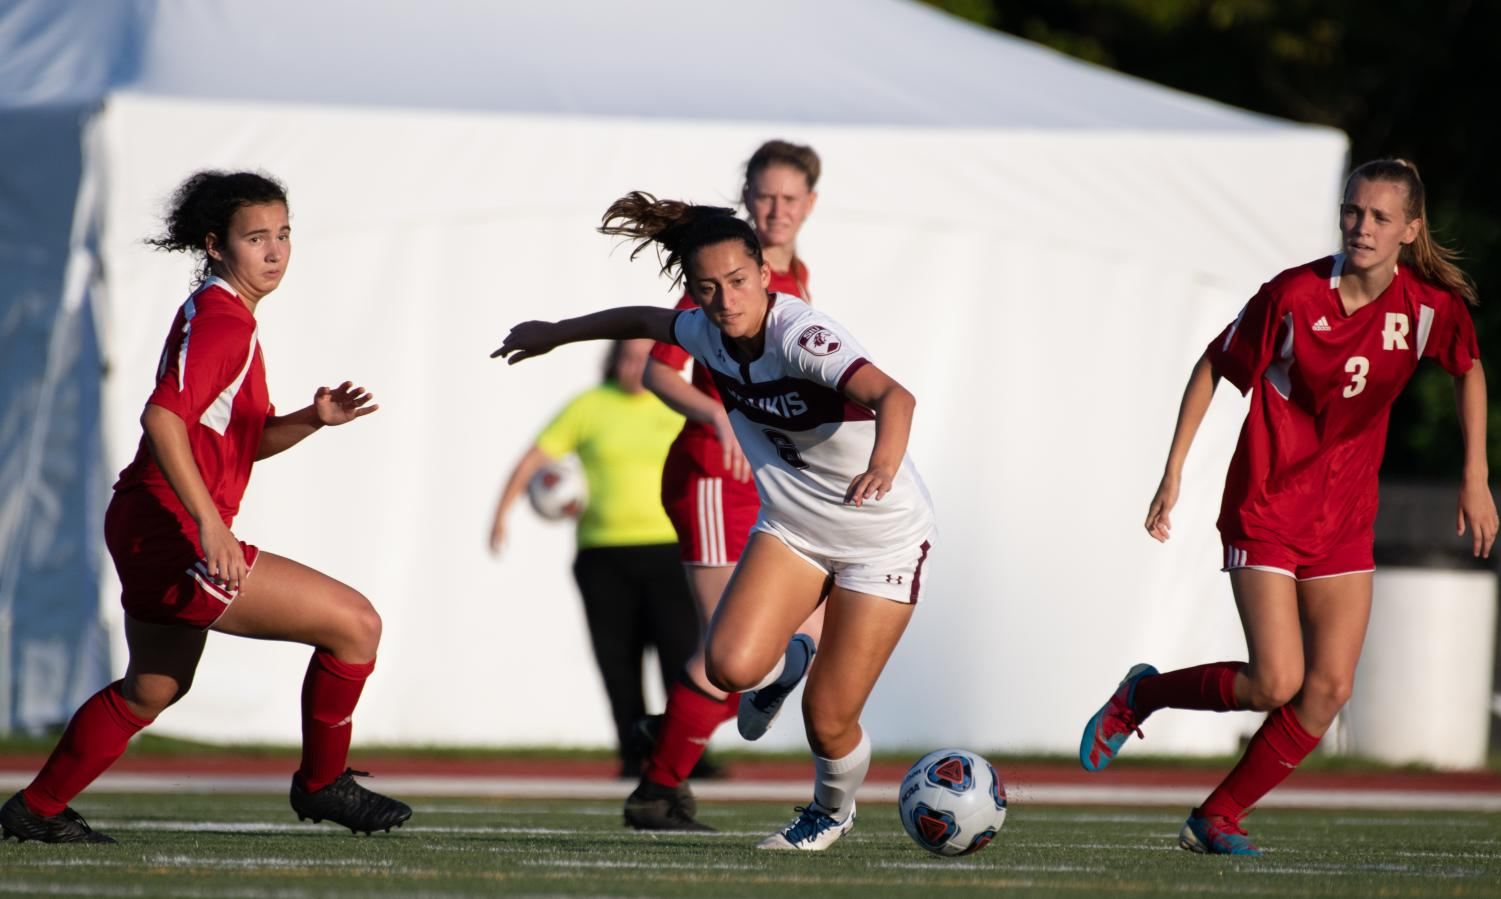 Saluki+sophomore+Kailyn+Stone+takes+the+ball+downfield+on+Tuesday%2C+Aug.+27%2C+2019+during+the+Salukis%27+1-0+win+against+the+Rose-Hulman+Fightin%27+Engineers+at+the+Lew+Hartzog+Track+%26+Field+Complex.